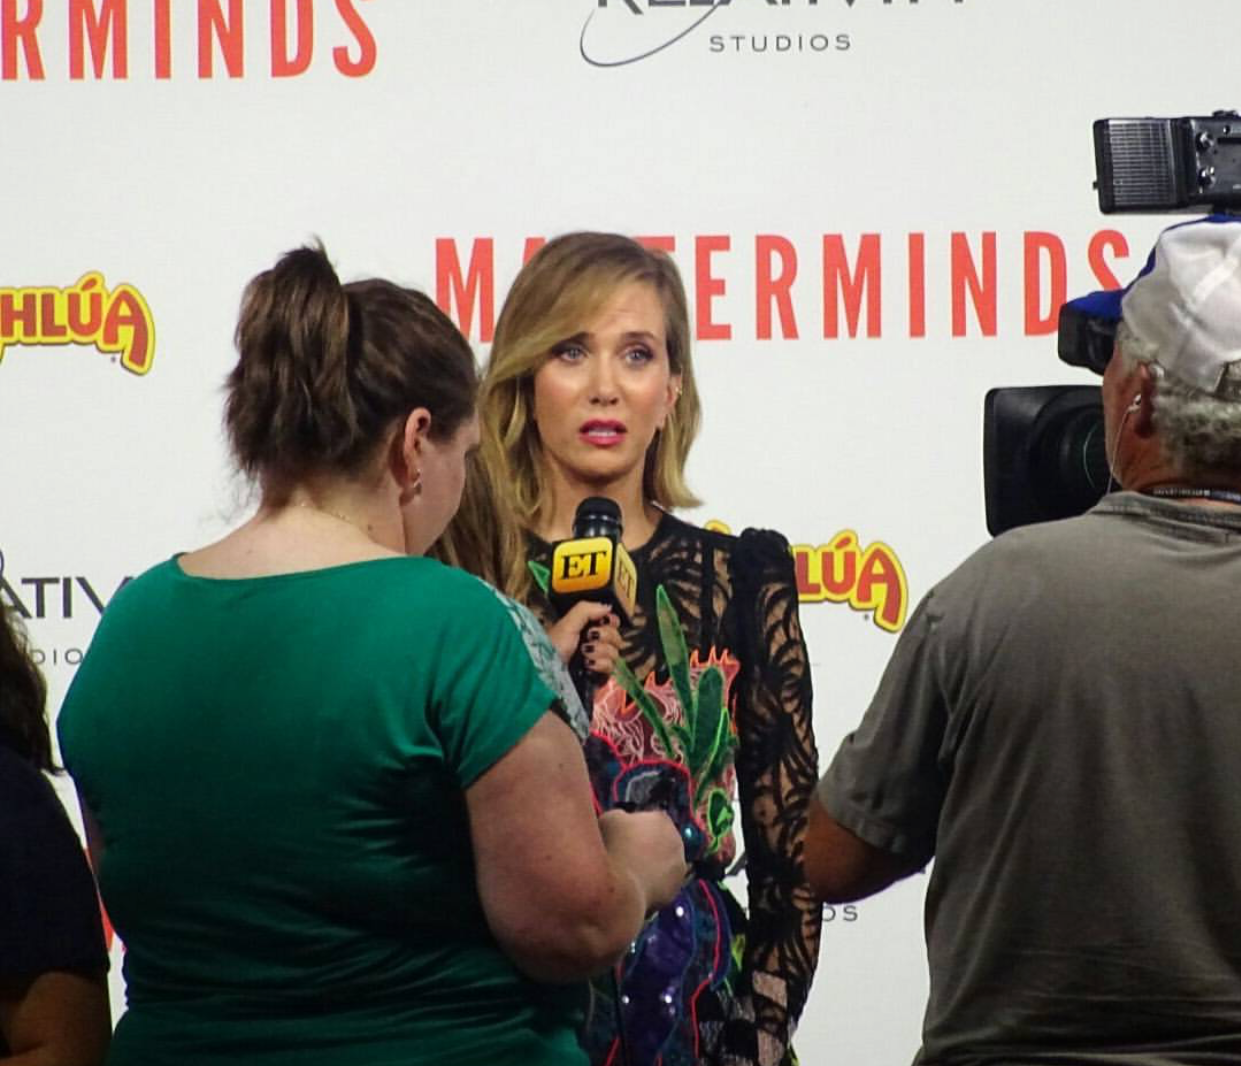 masterminds-movie-premiere-kristen-wiig